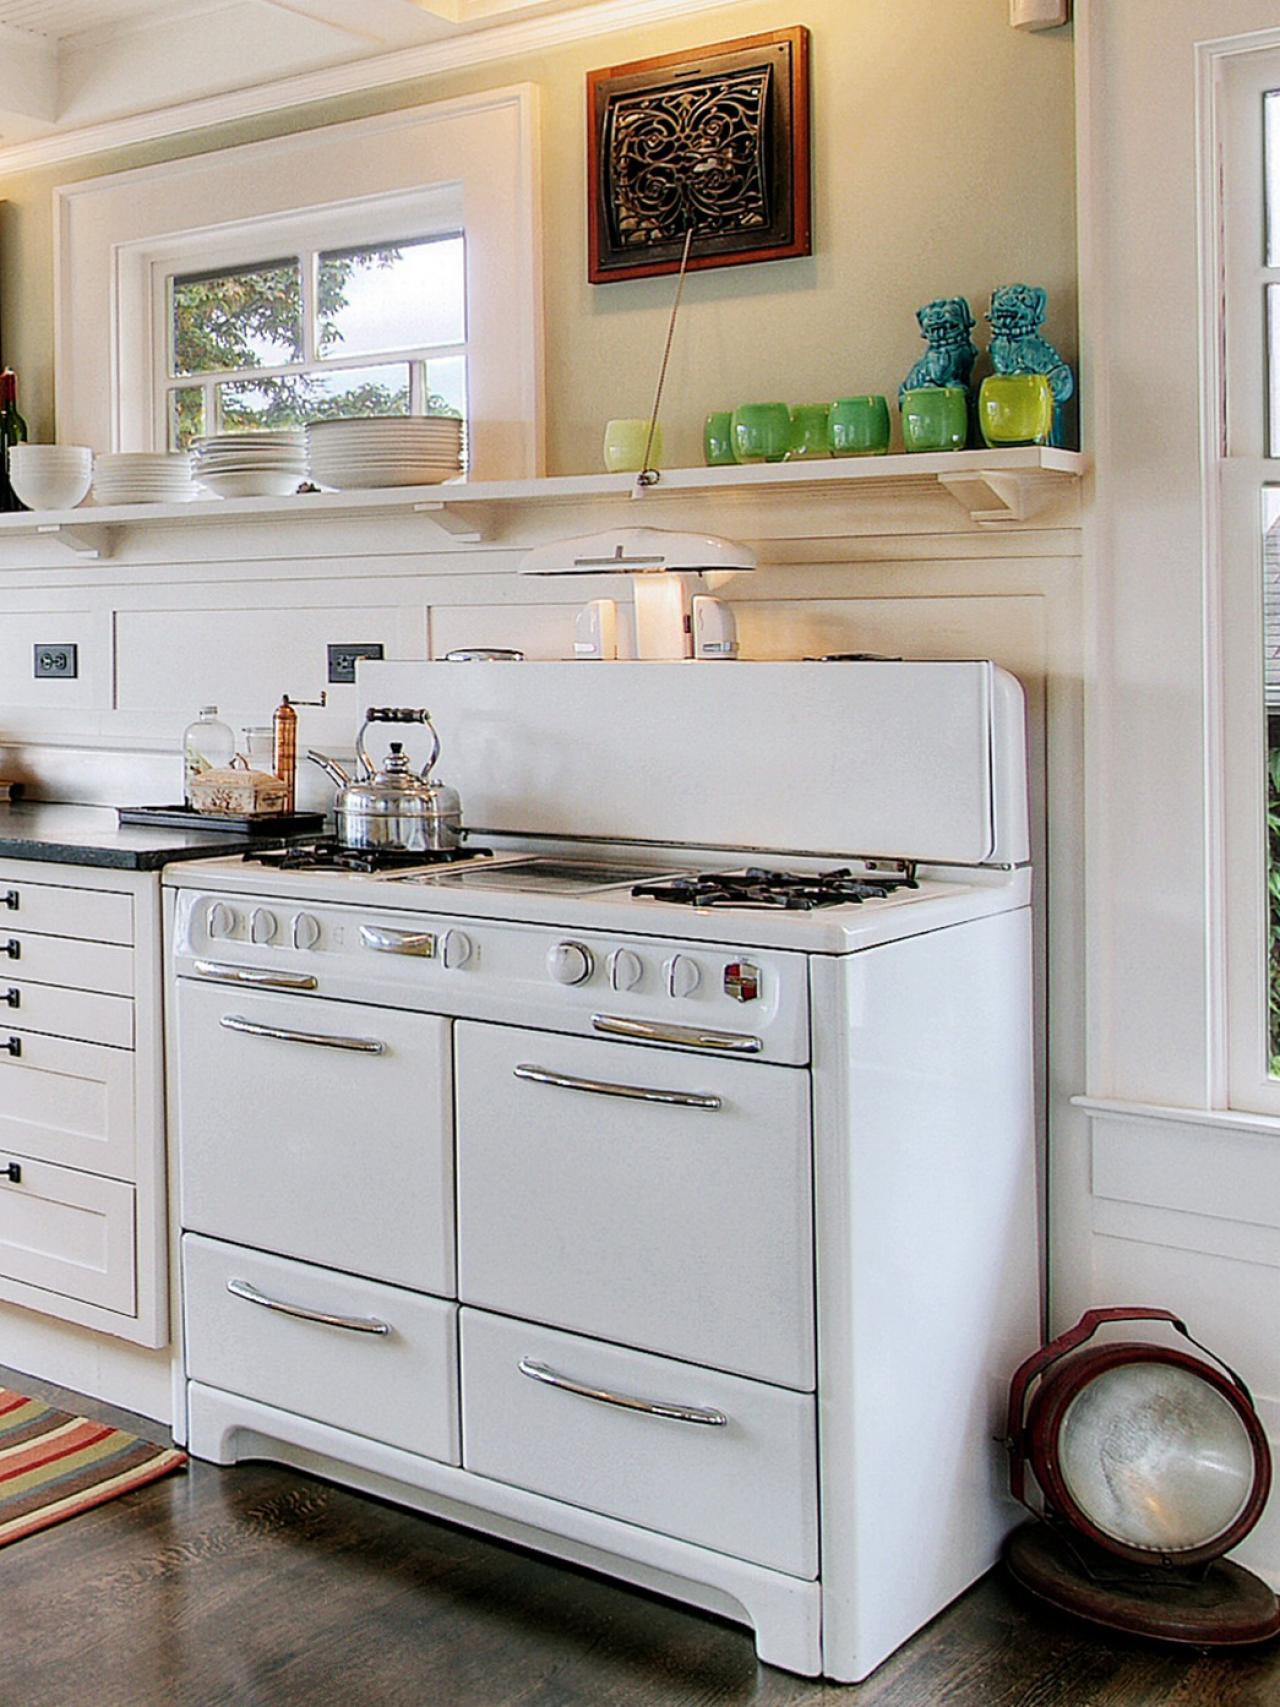 Remodeling your kitchen with salvaged items diy for Old home kitchen remodel